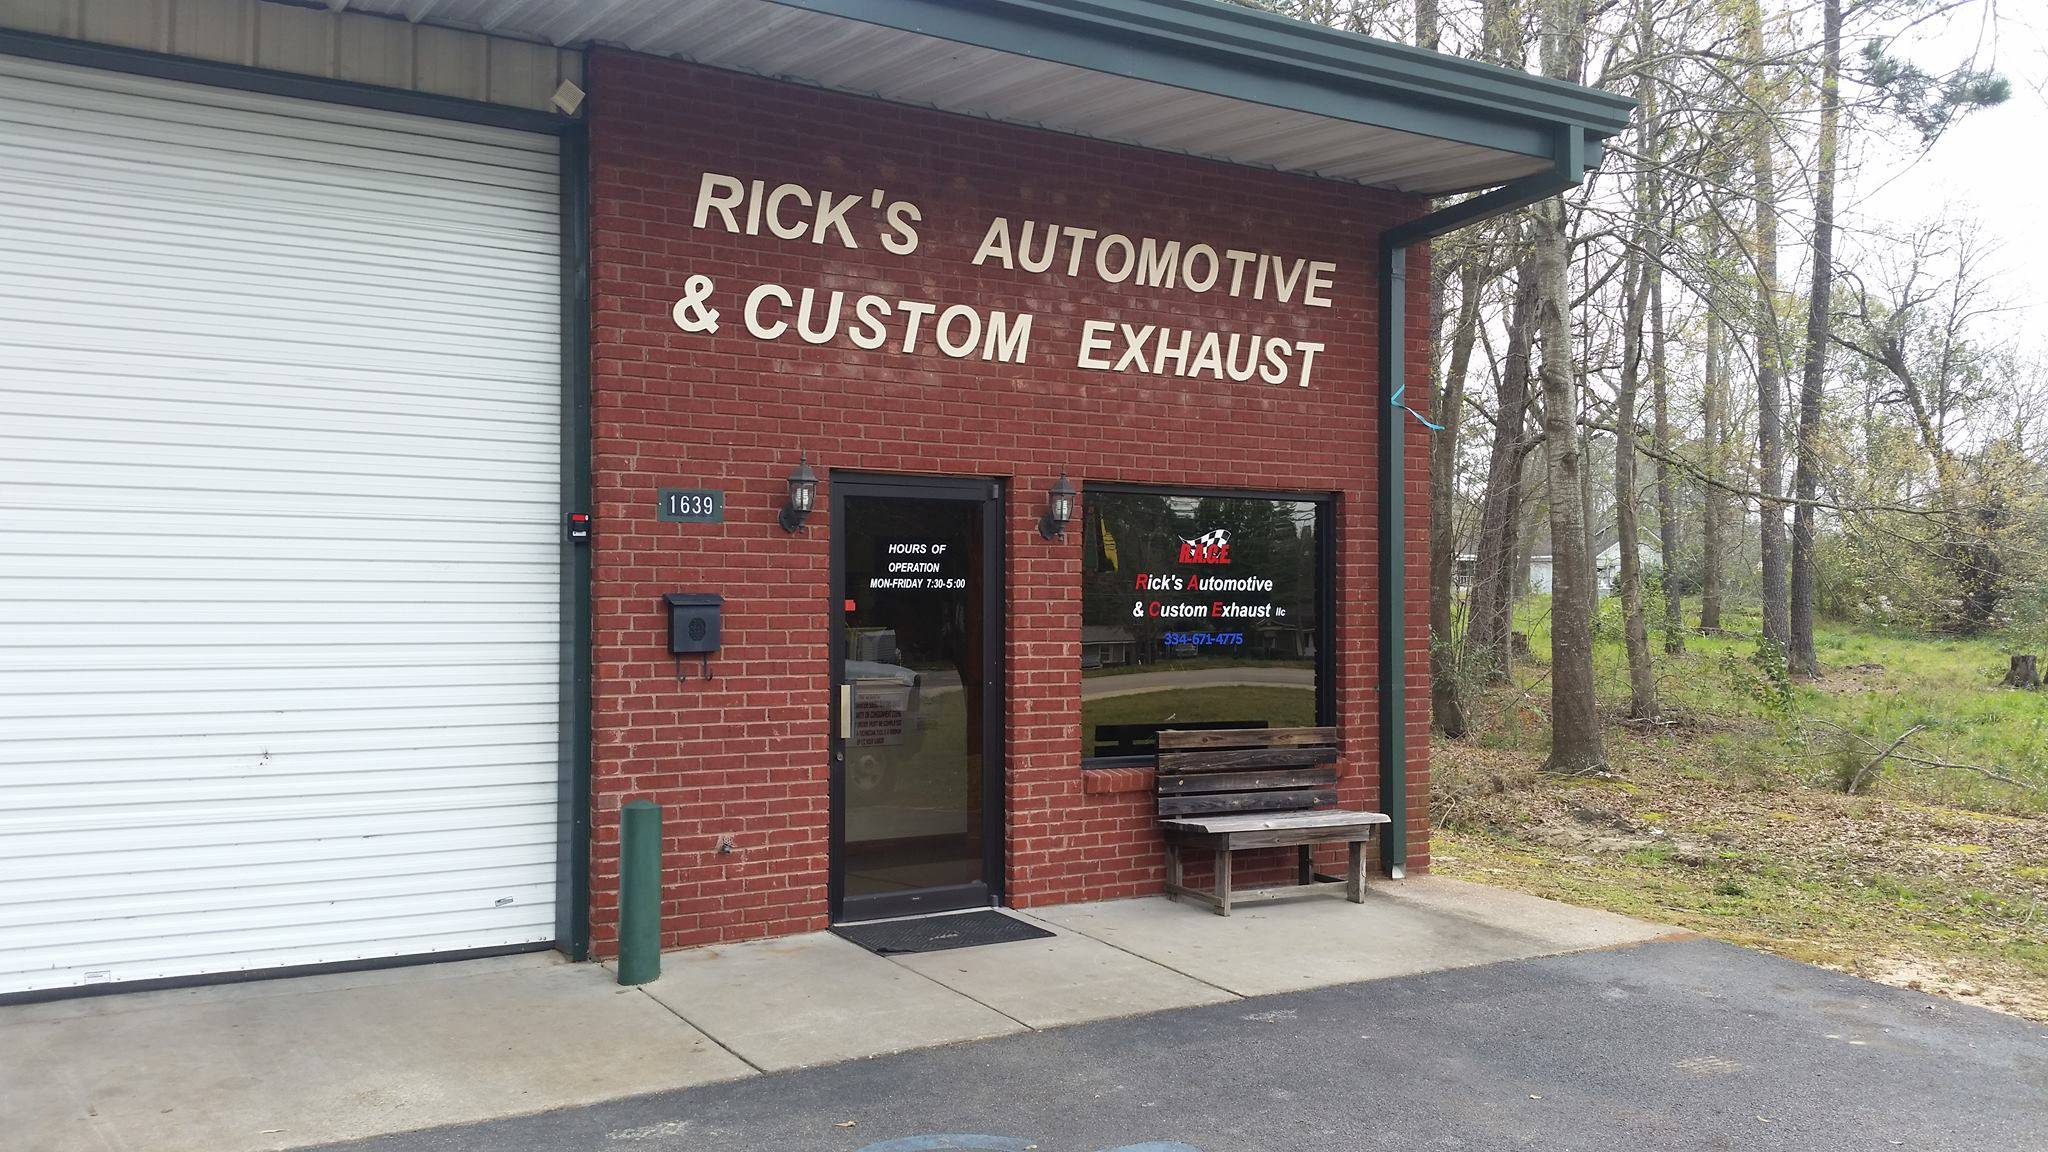 Rick's Automotive and Custom Exhaust, 1639 south oates st, Dothan , Al, 36301, us